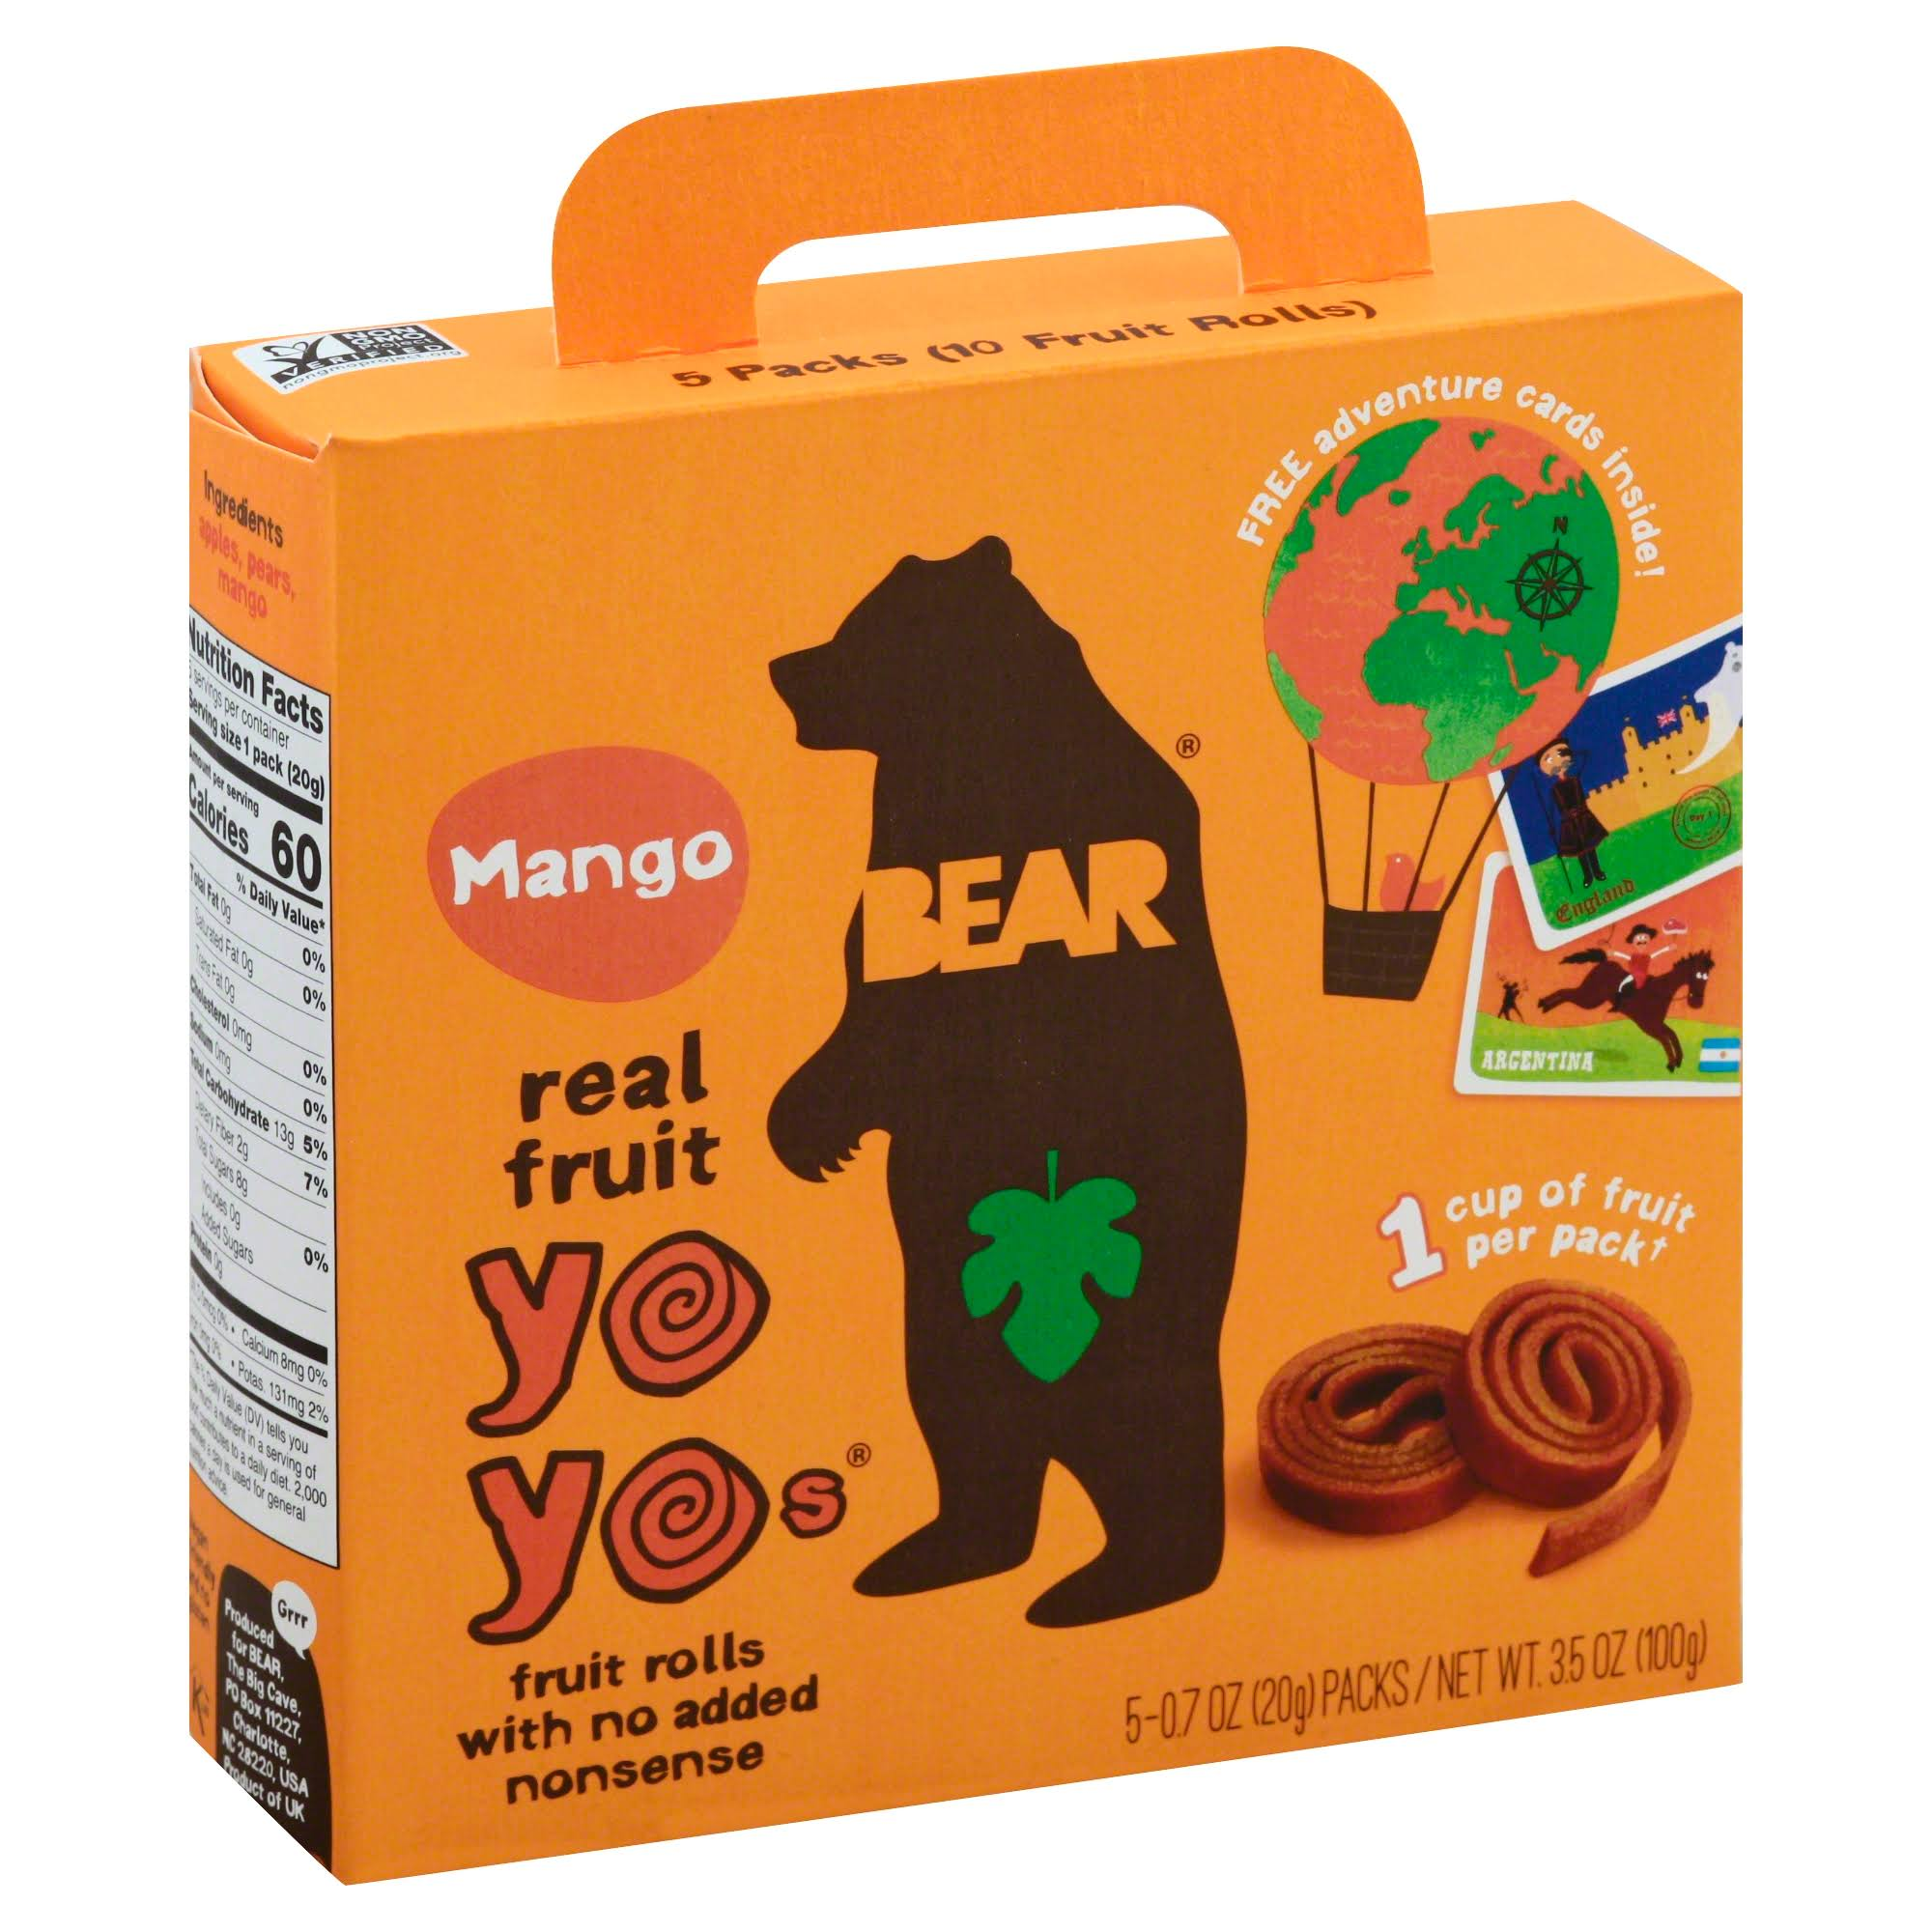 Bear Yo Yos, Real Fruit, Mango - 5 pack, 0.7 oz packs